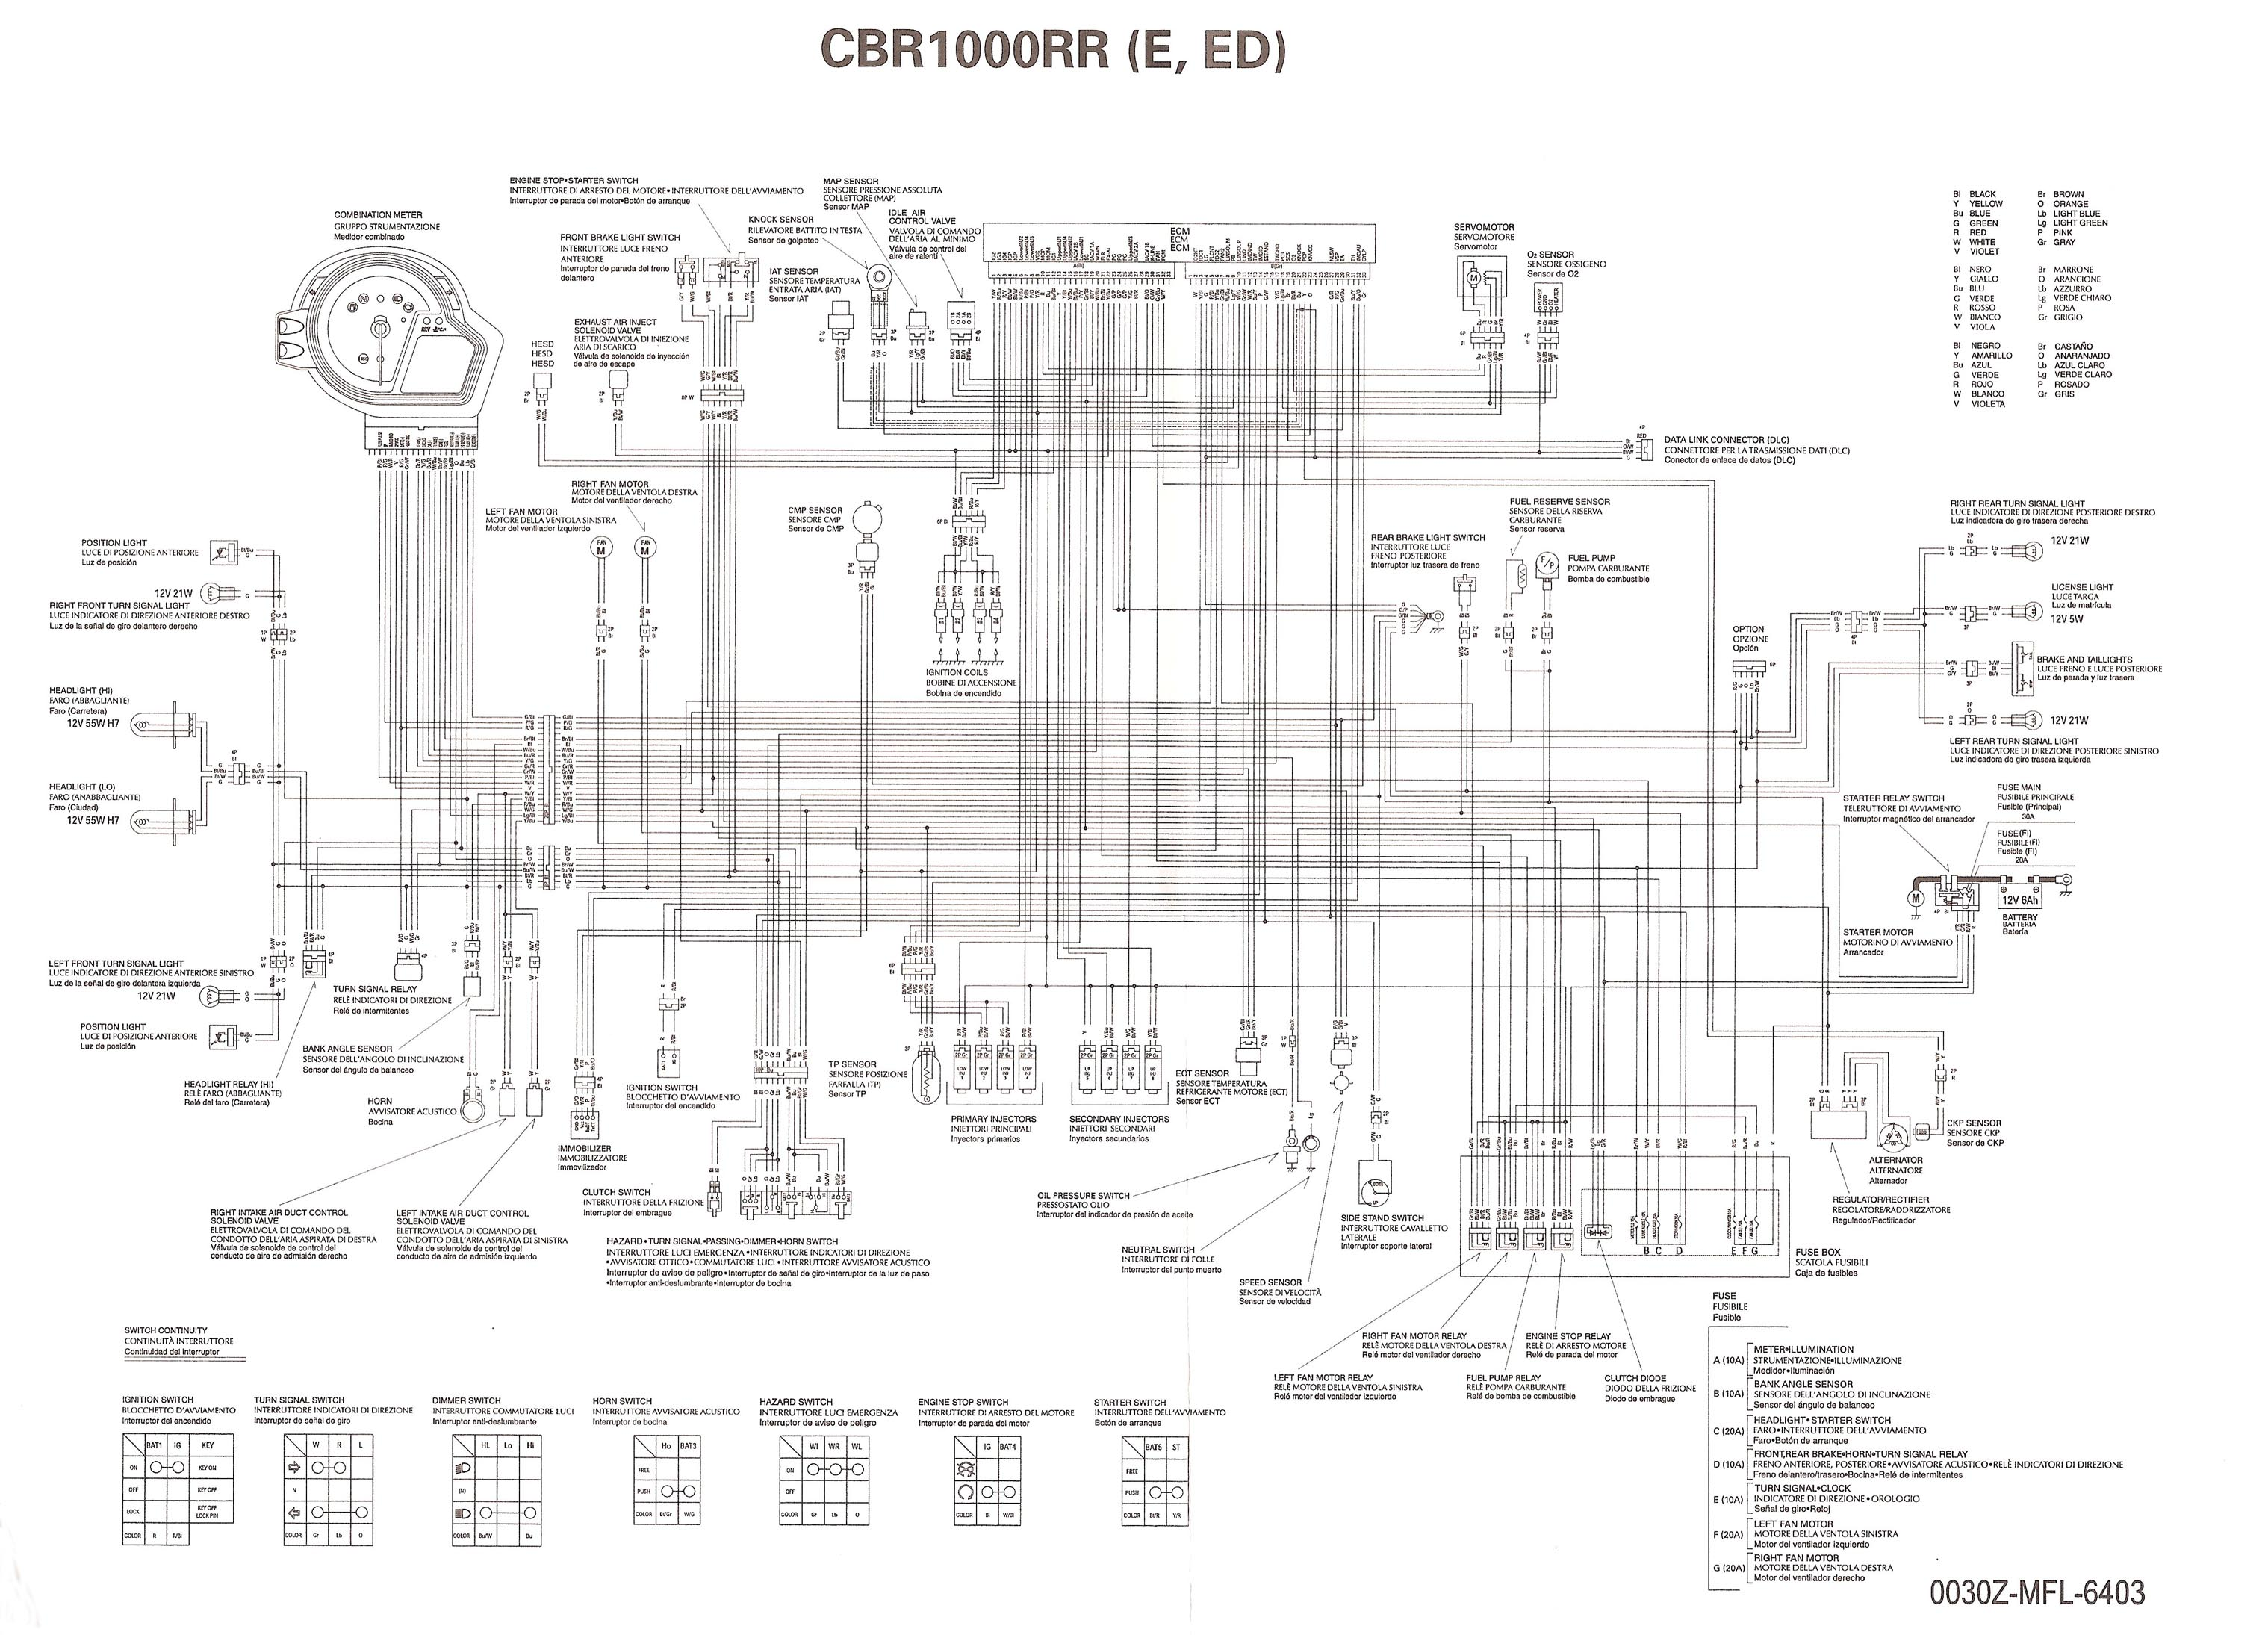 small resolution of 2000 jeep cherokee fuel pump wiring diagram together with 2007 chrysler sebring fuse